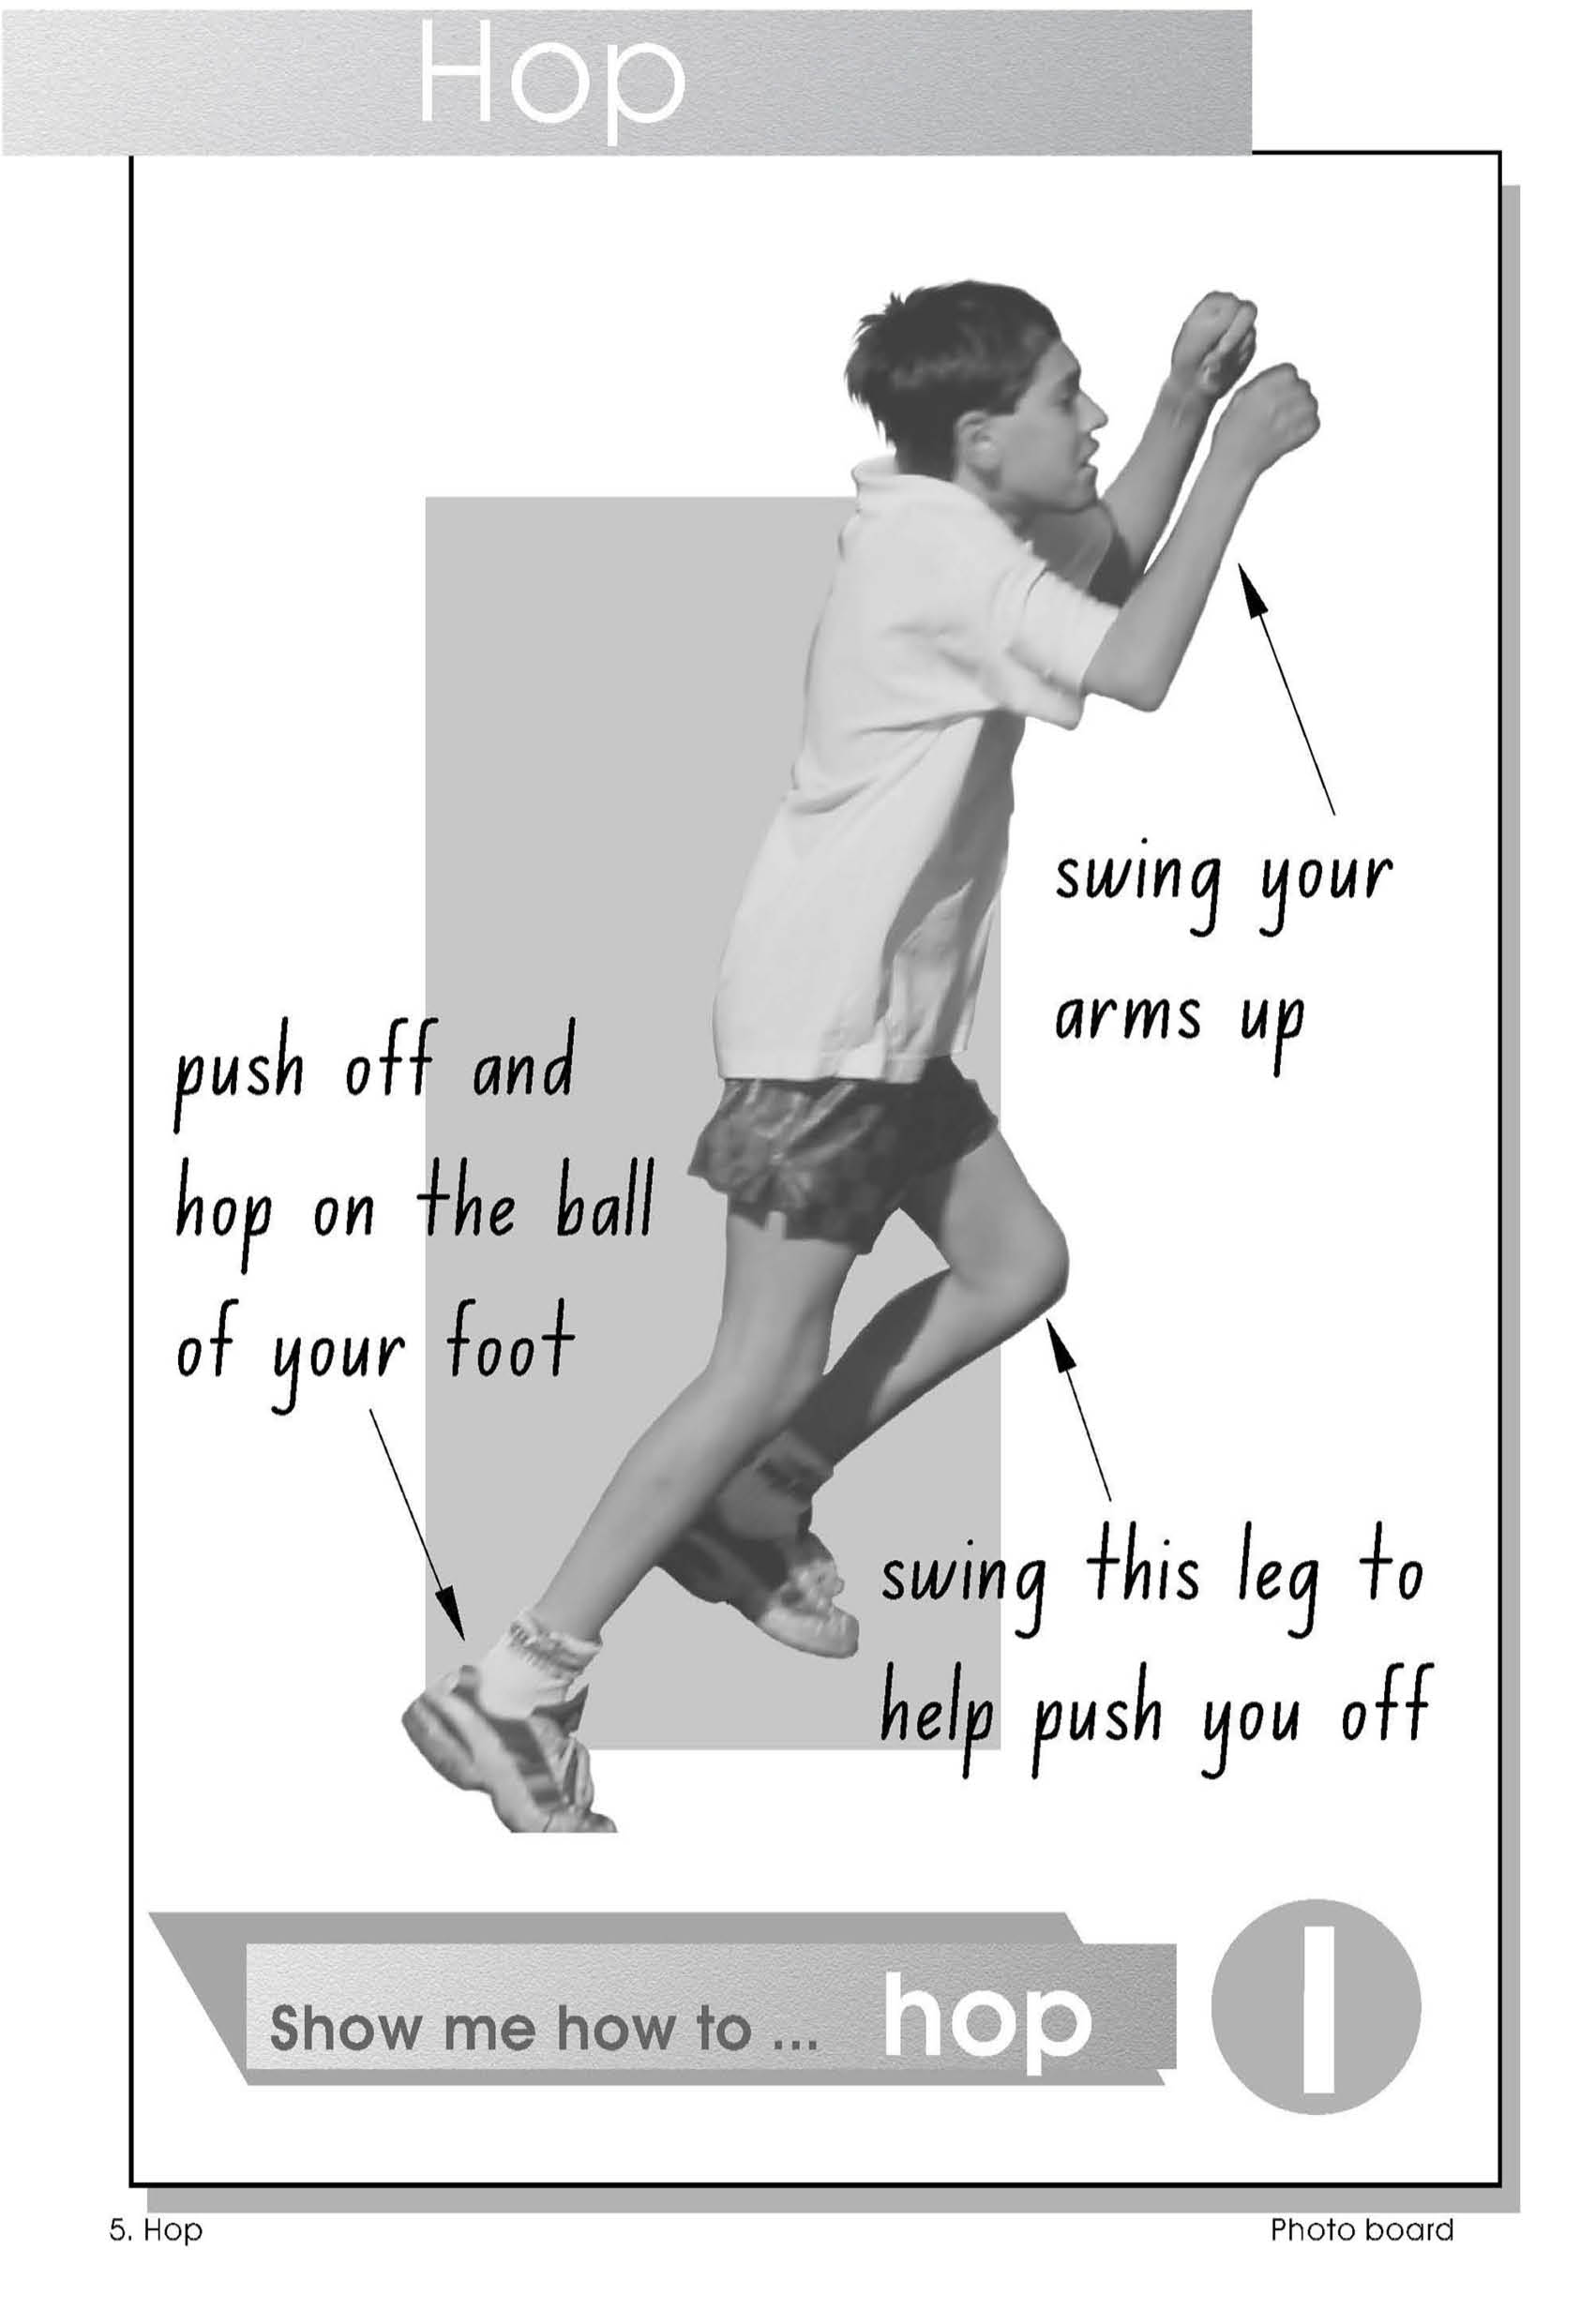 Observational poster - how to hop